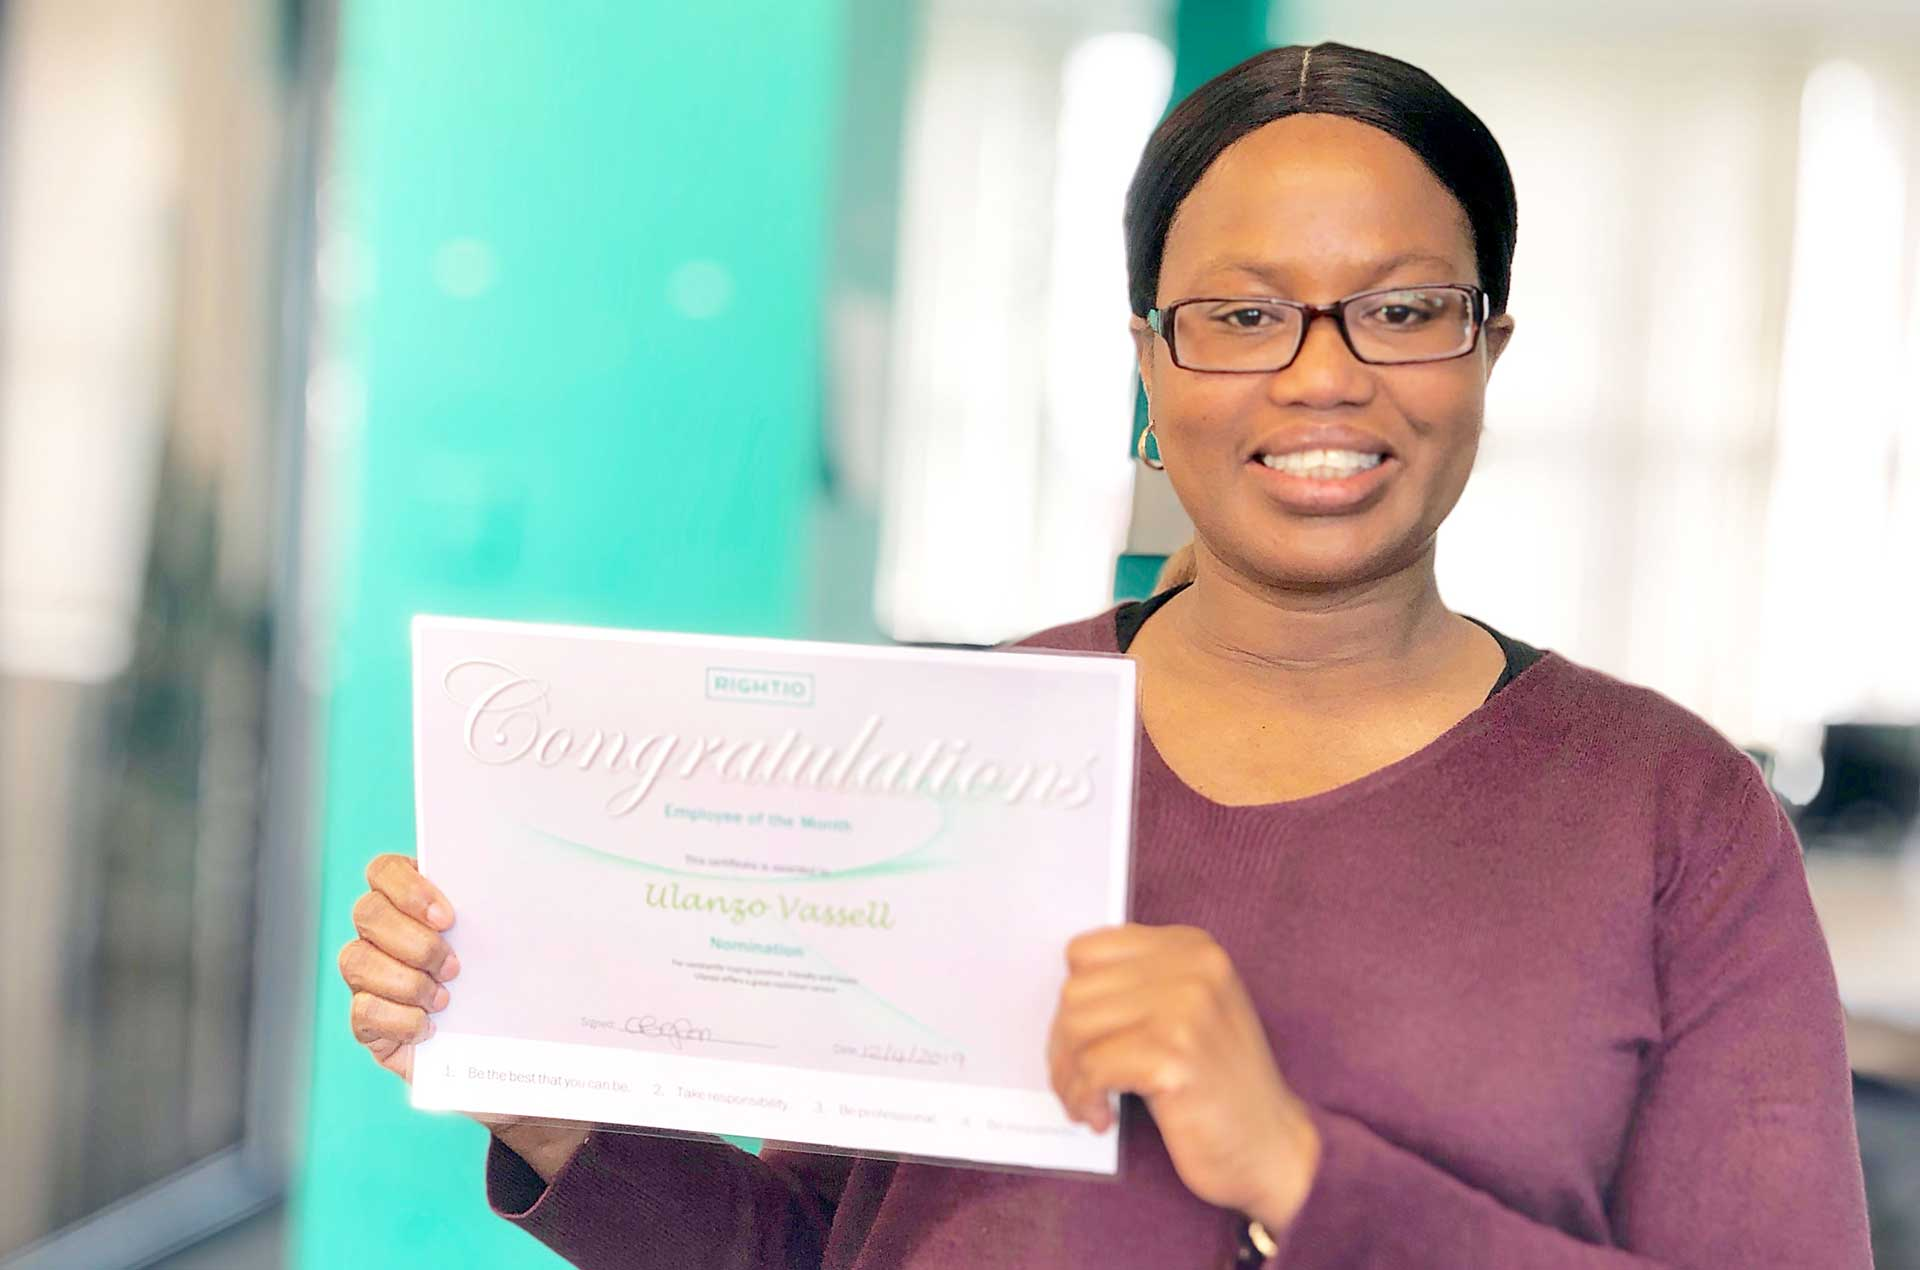 Employee of the month Ulanzo Vassell in South East London